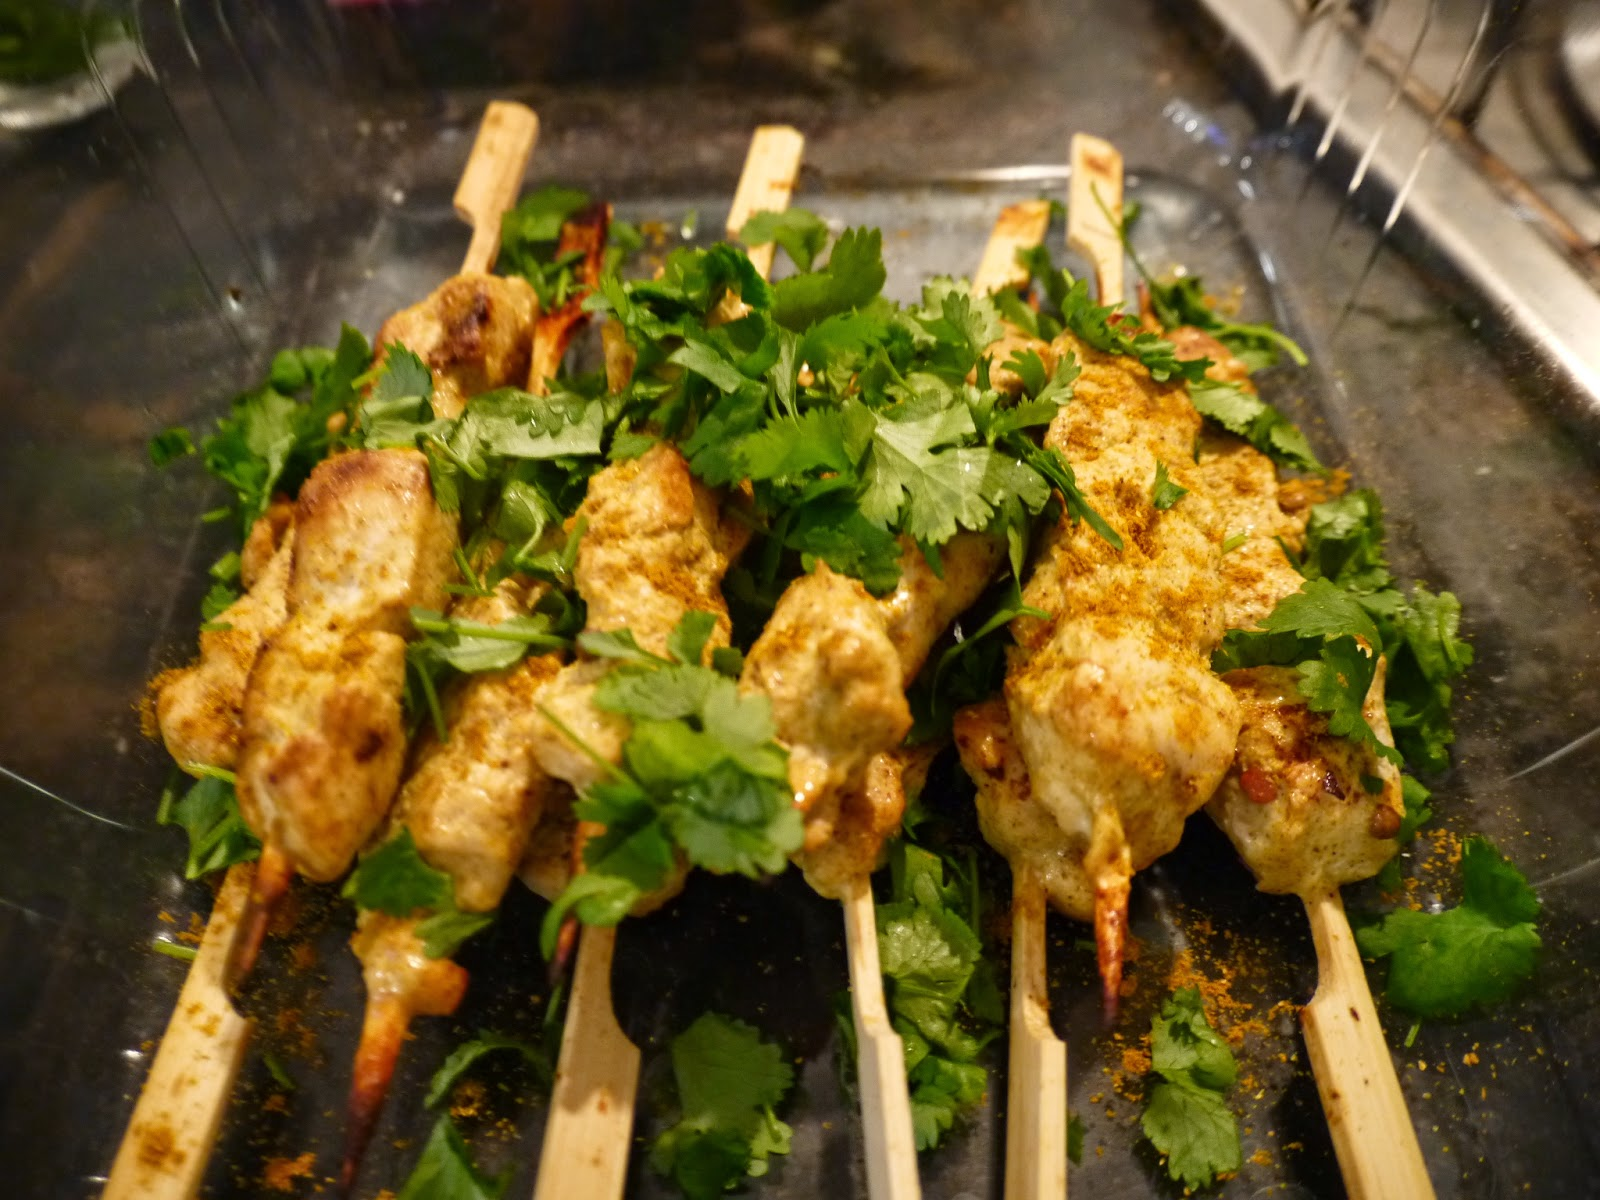 Chicken curry skewers recipe by Appetit Voyage